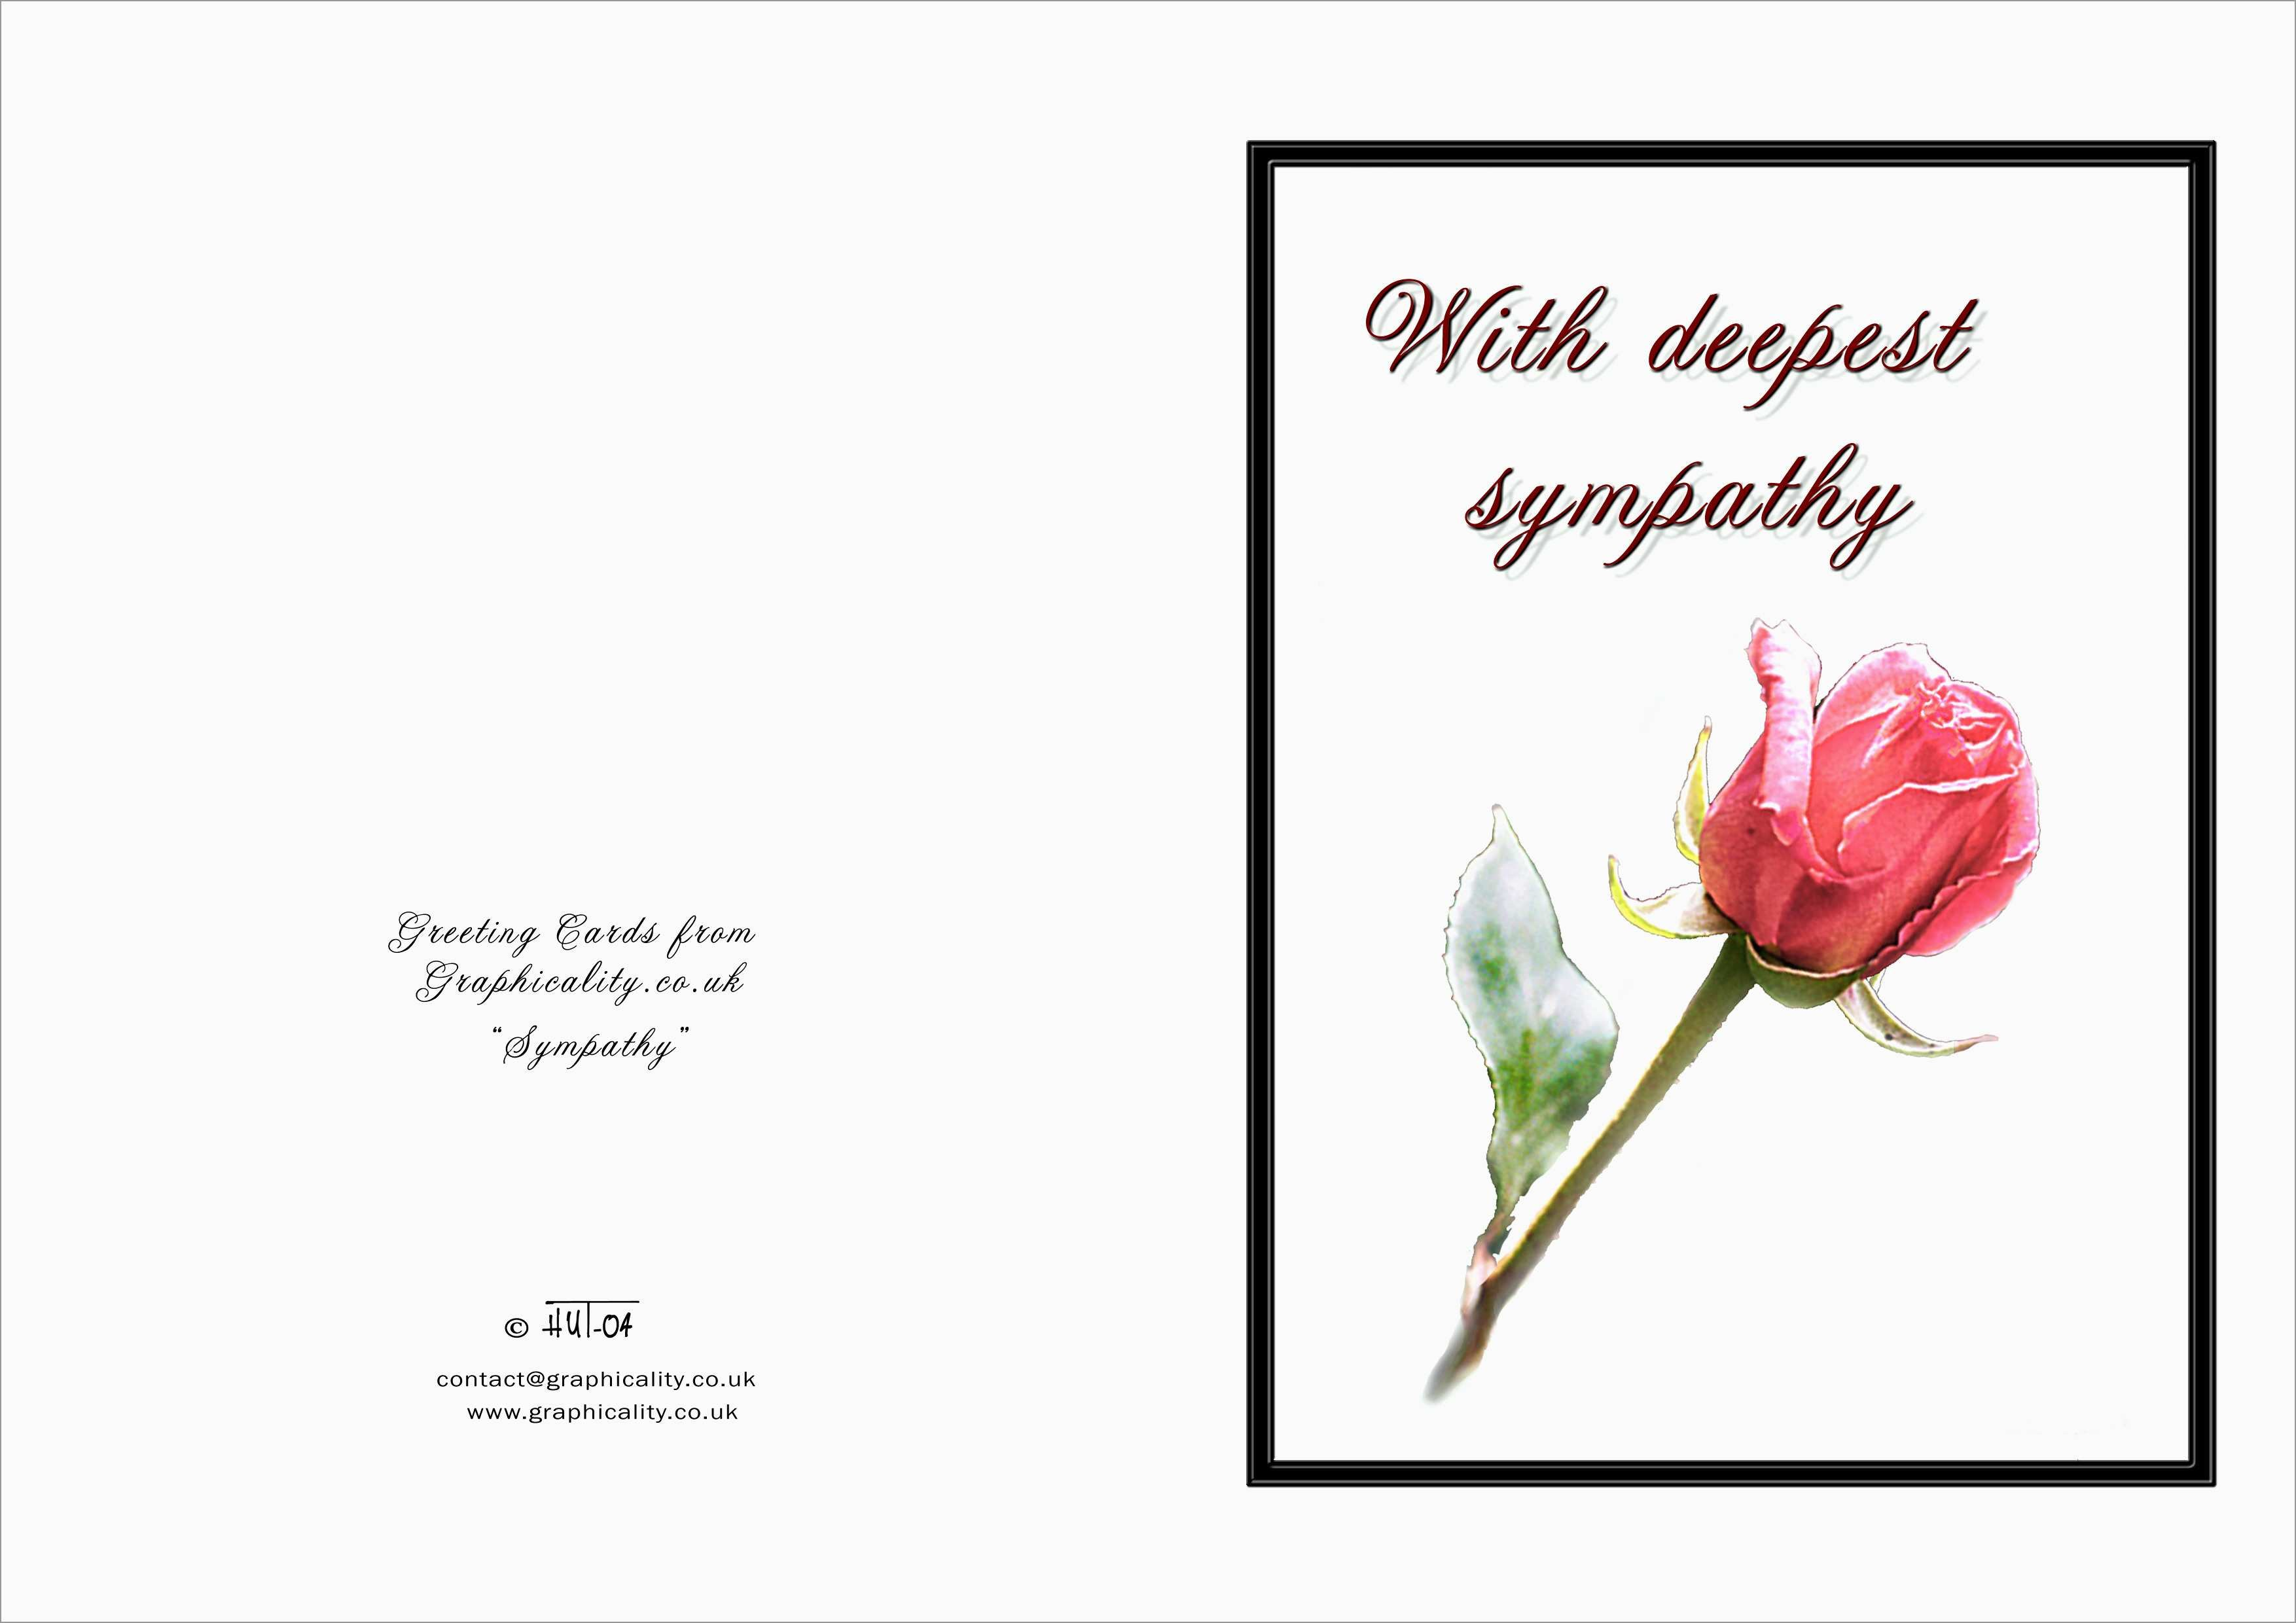 Fresh Memorial Cards For Funeral Template Free  Best Of Template Throughout Memorial Cards For Funeral Template Free